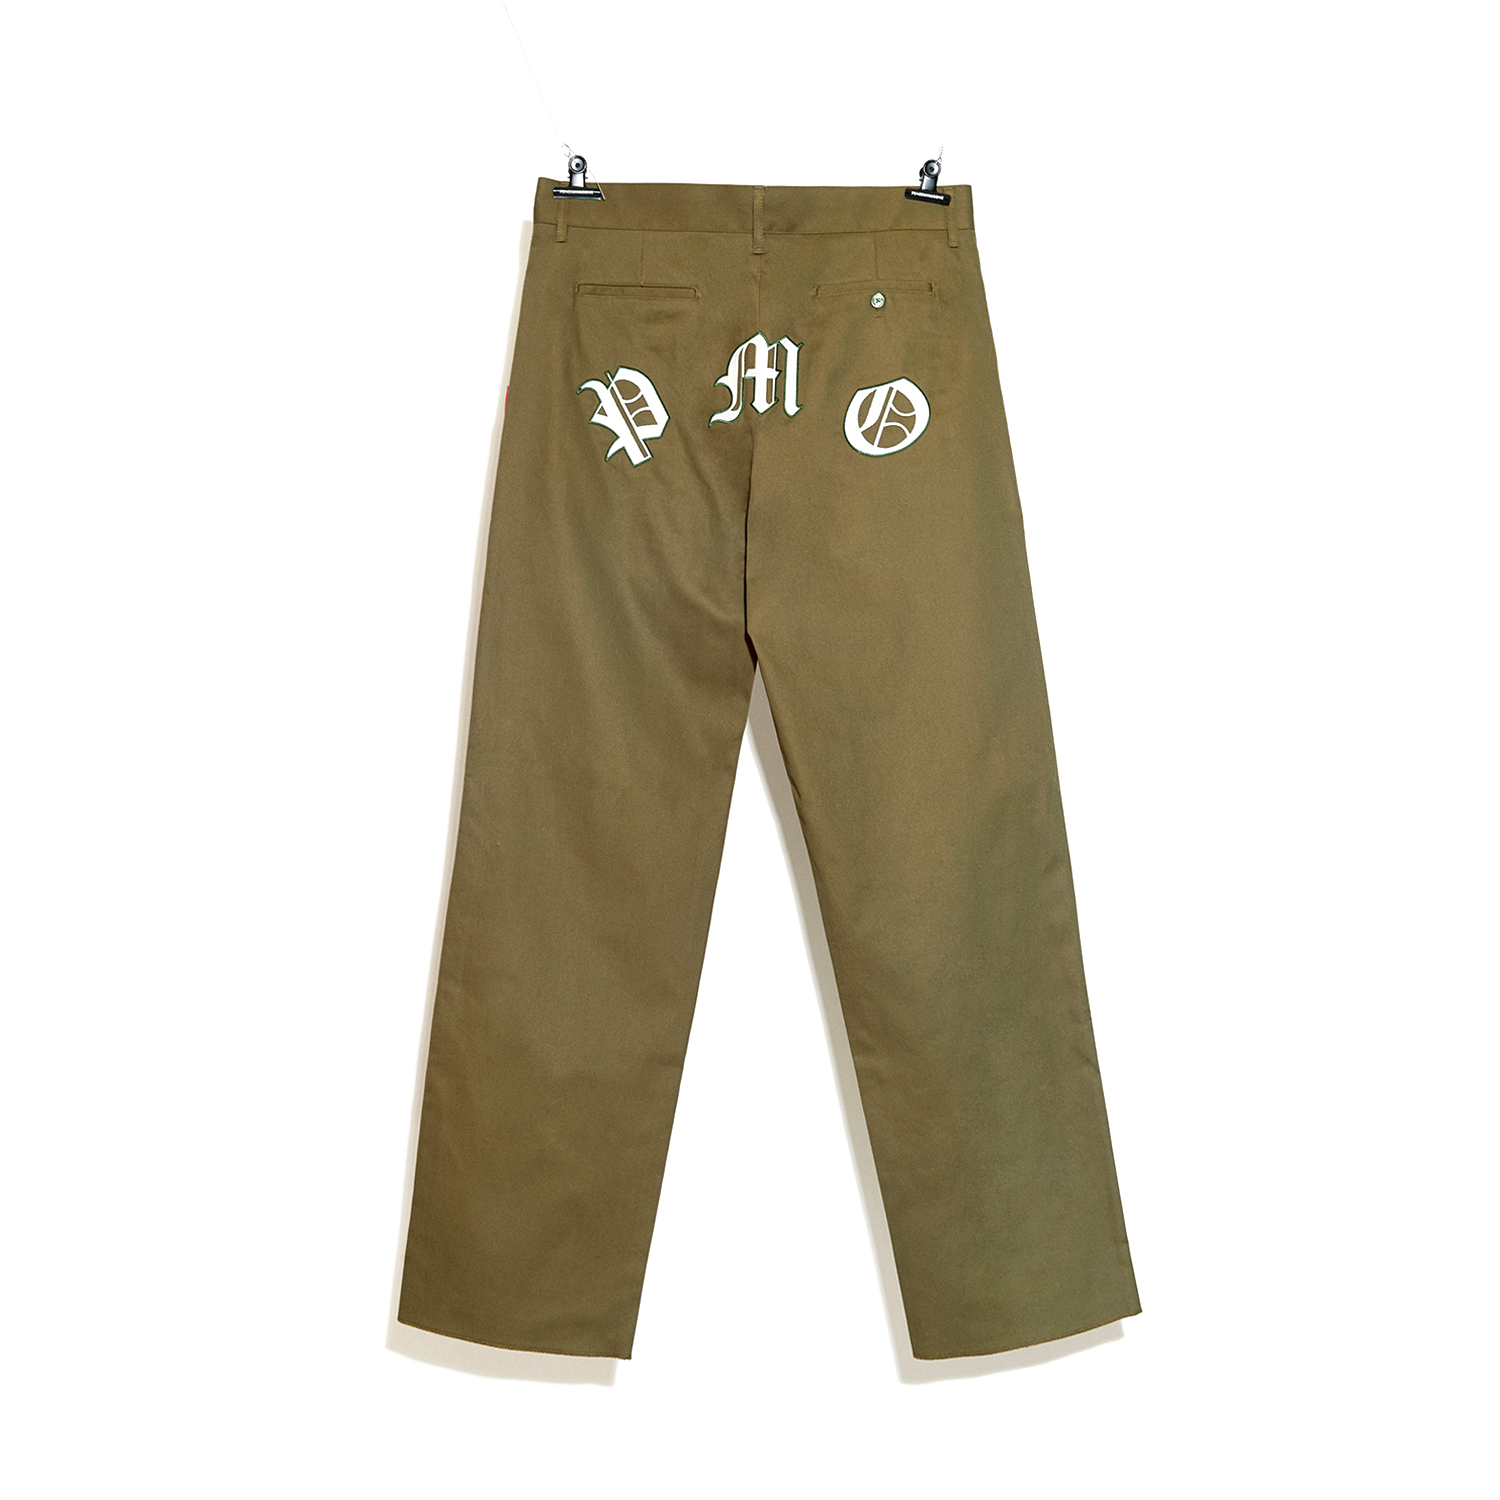 PMO WORK PANTS #1 KHAKI